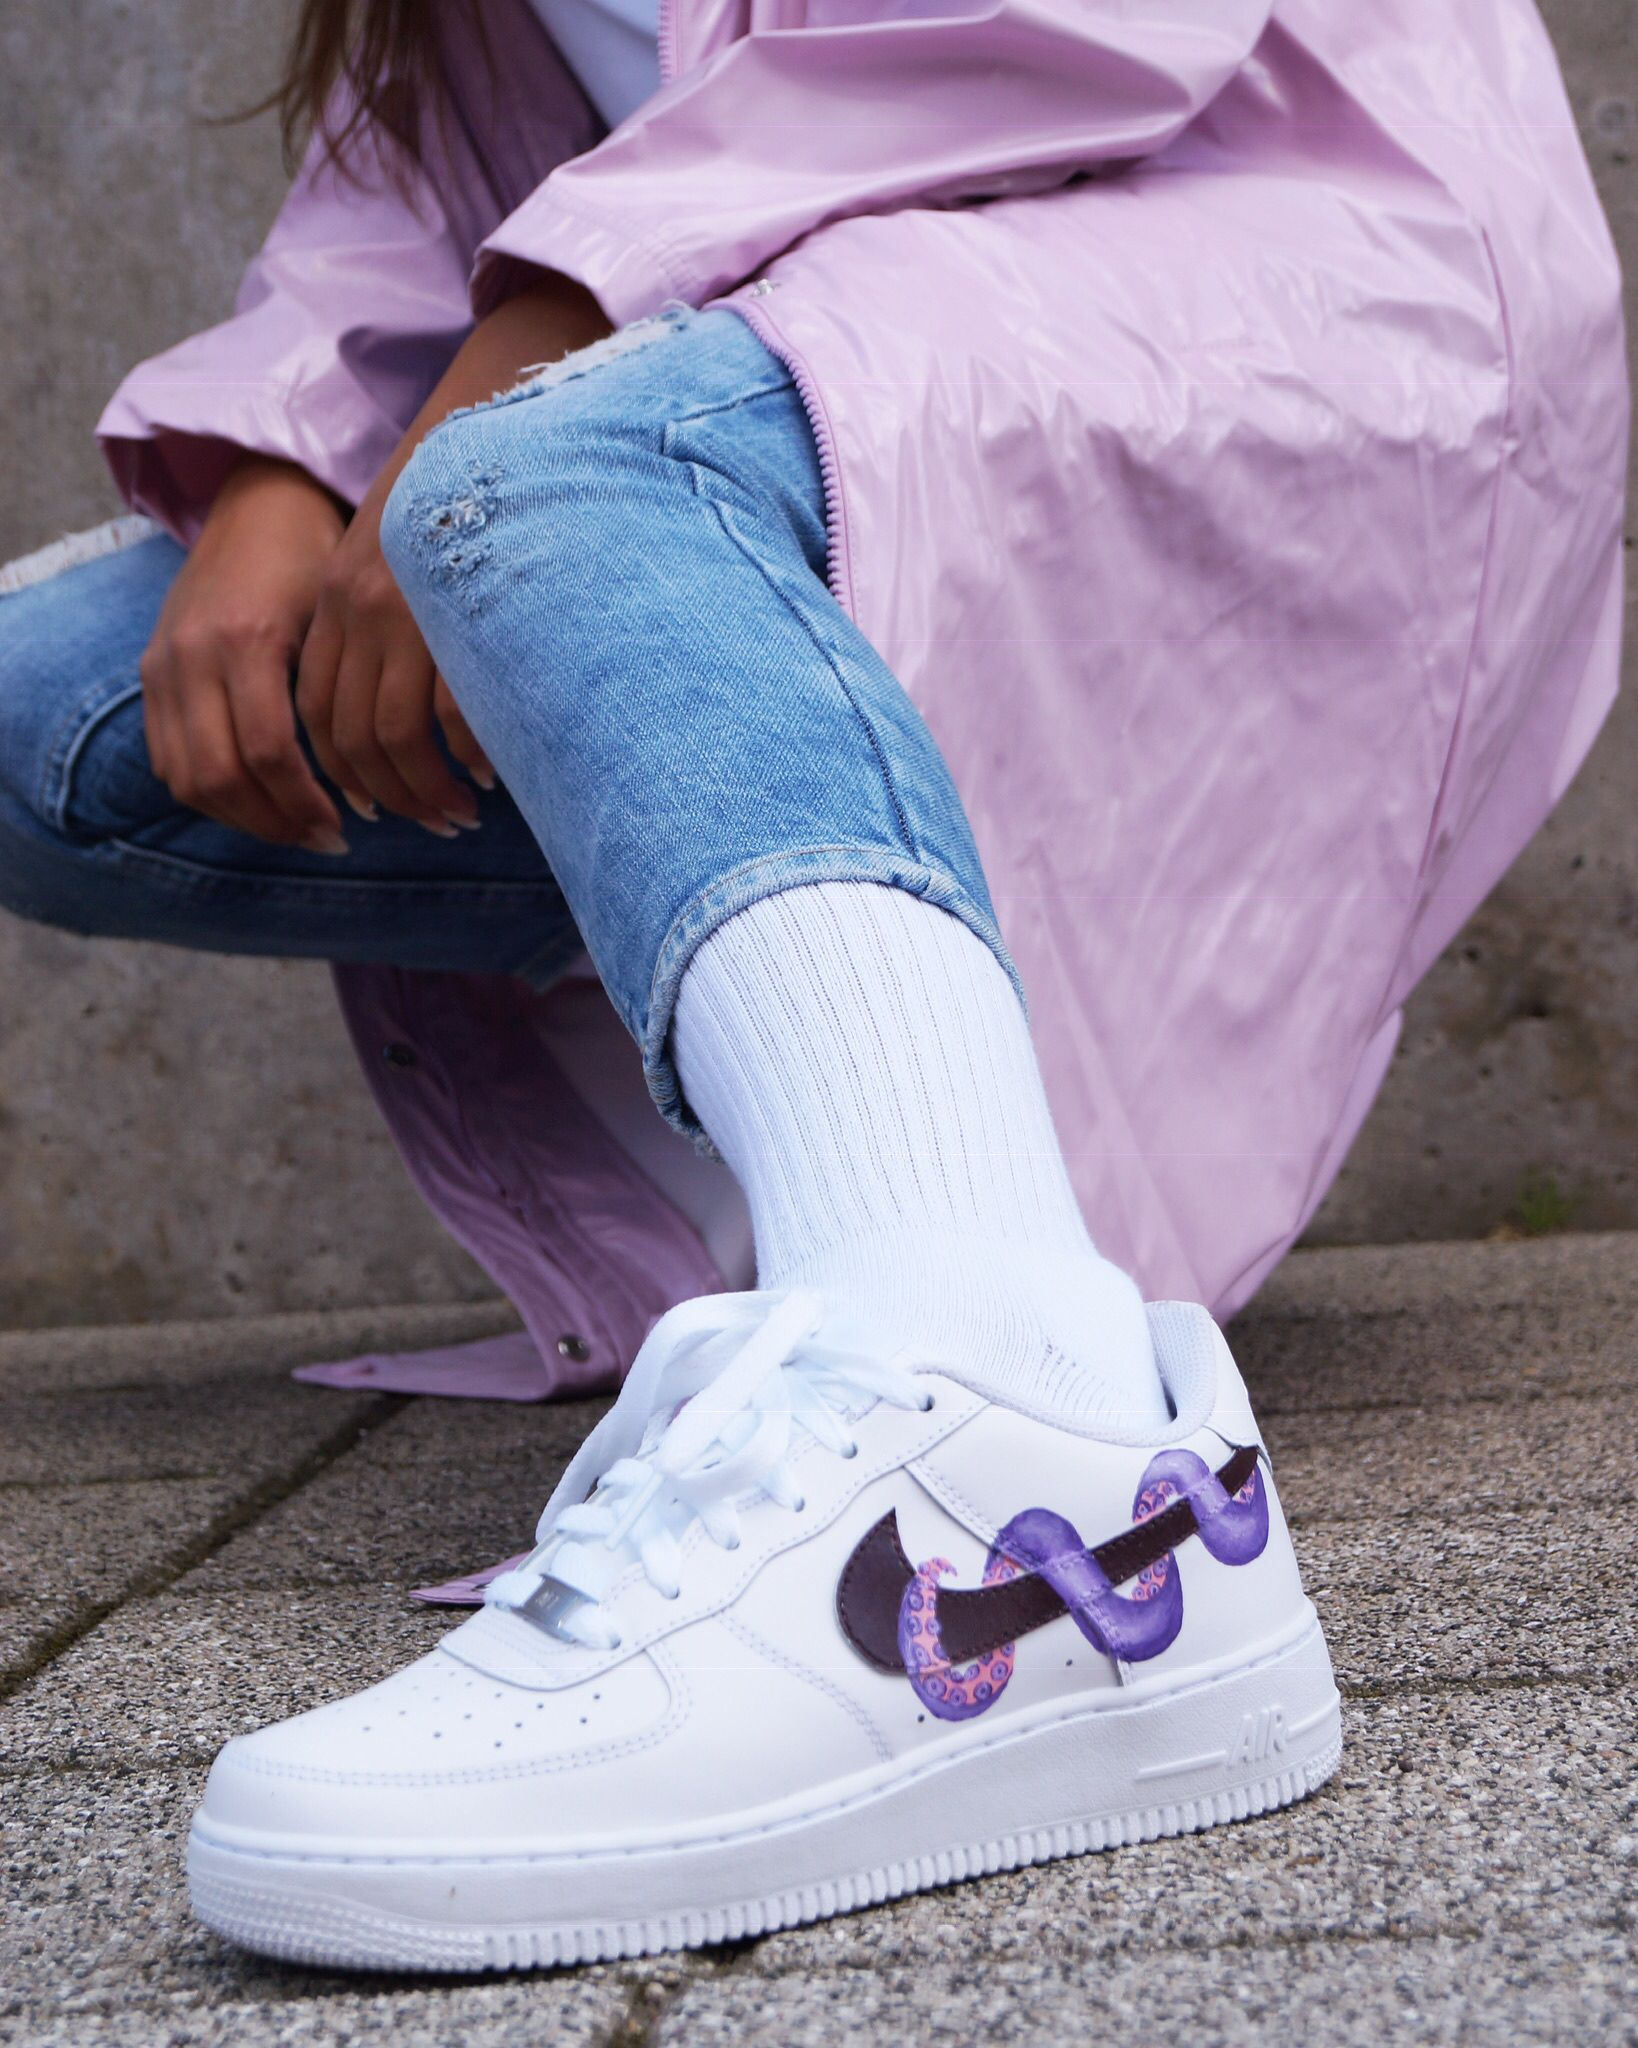 AF1 'Octopus' in 2020 Nike air shoes, Nike shoes air